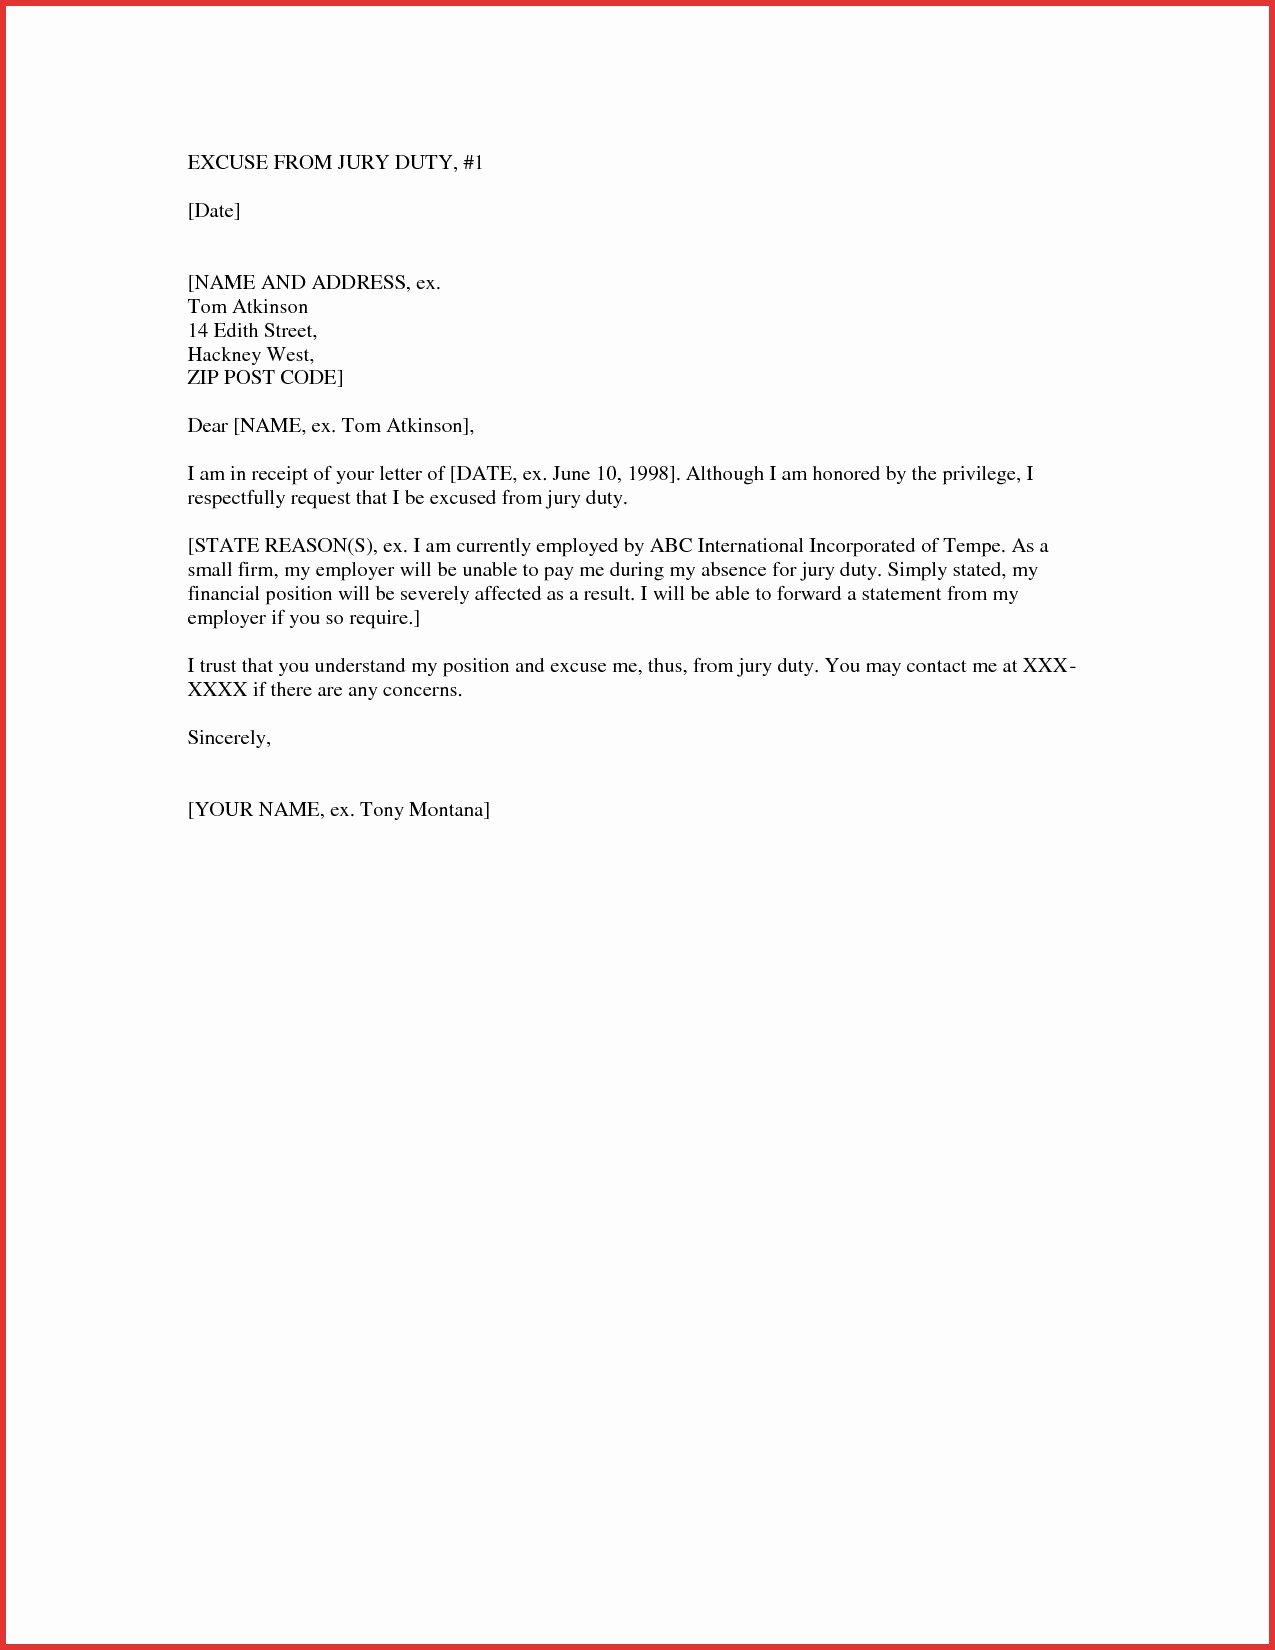 Jury Duty Hardship Letter From Employer New 9 Example Of Jury Duty Excuse Letter